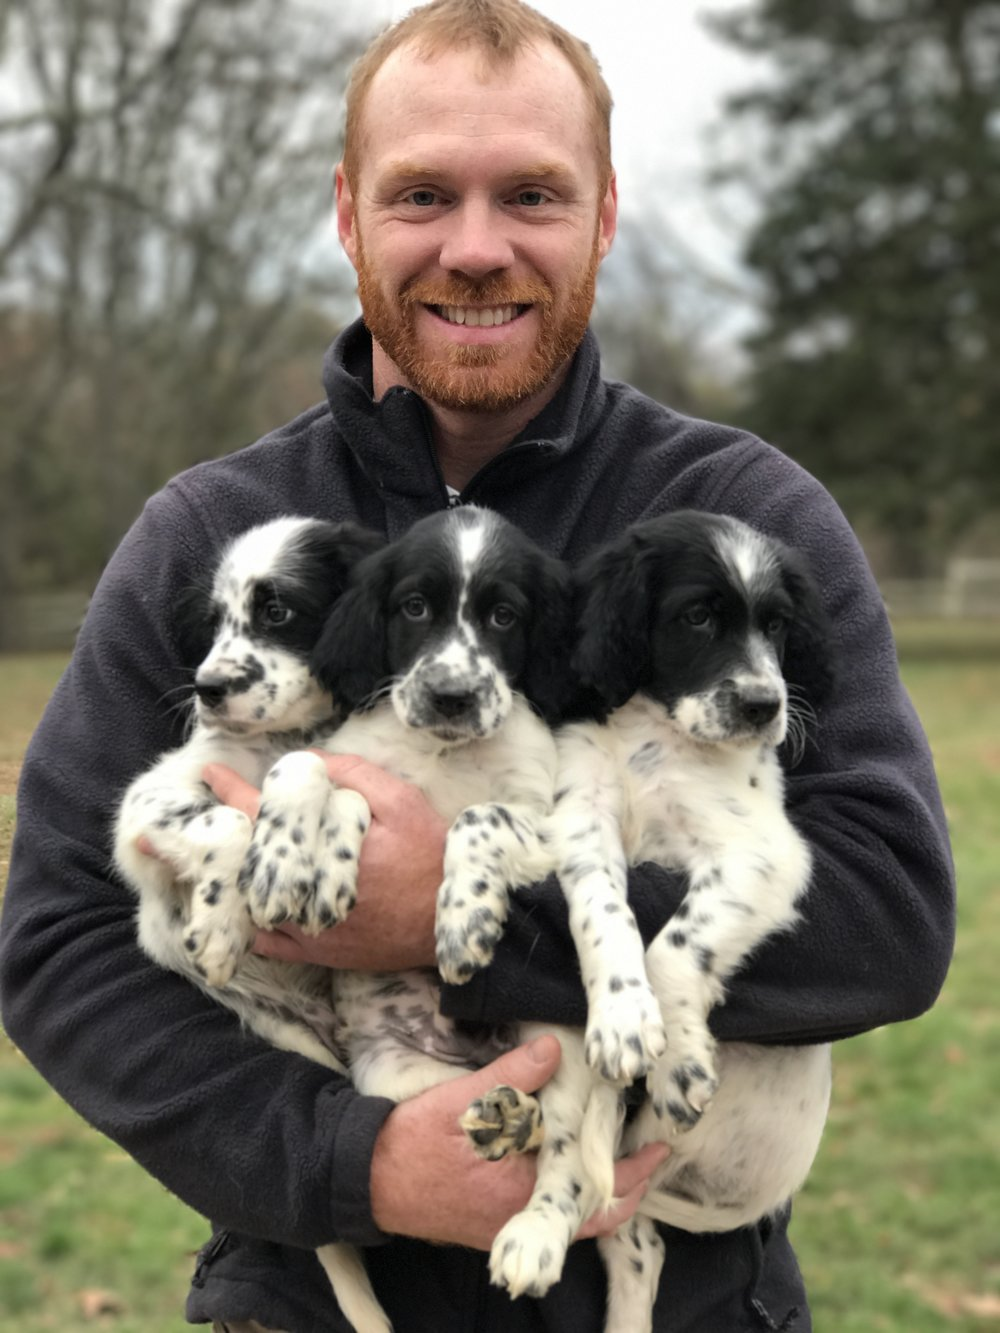 kyle_llewellinpuppies_dog training.JPG